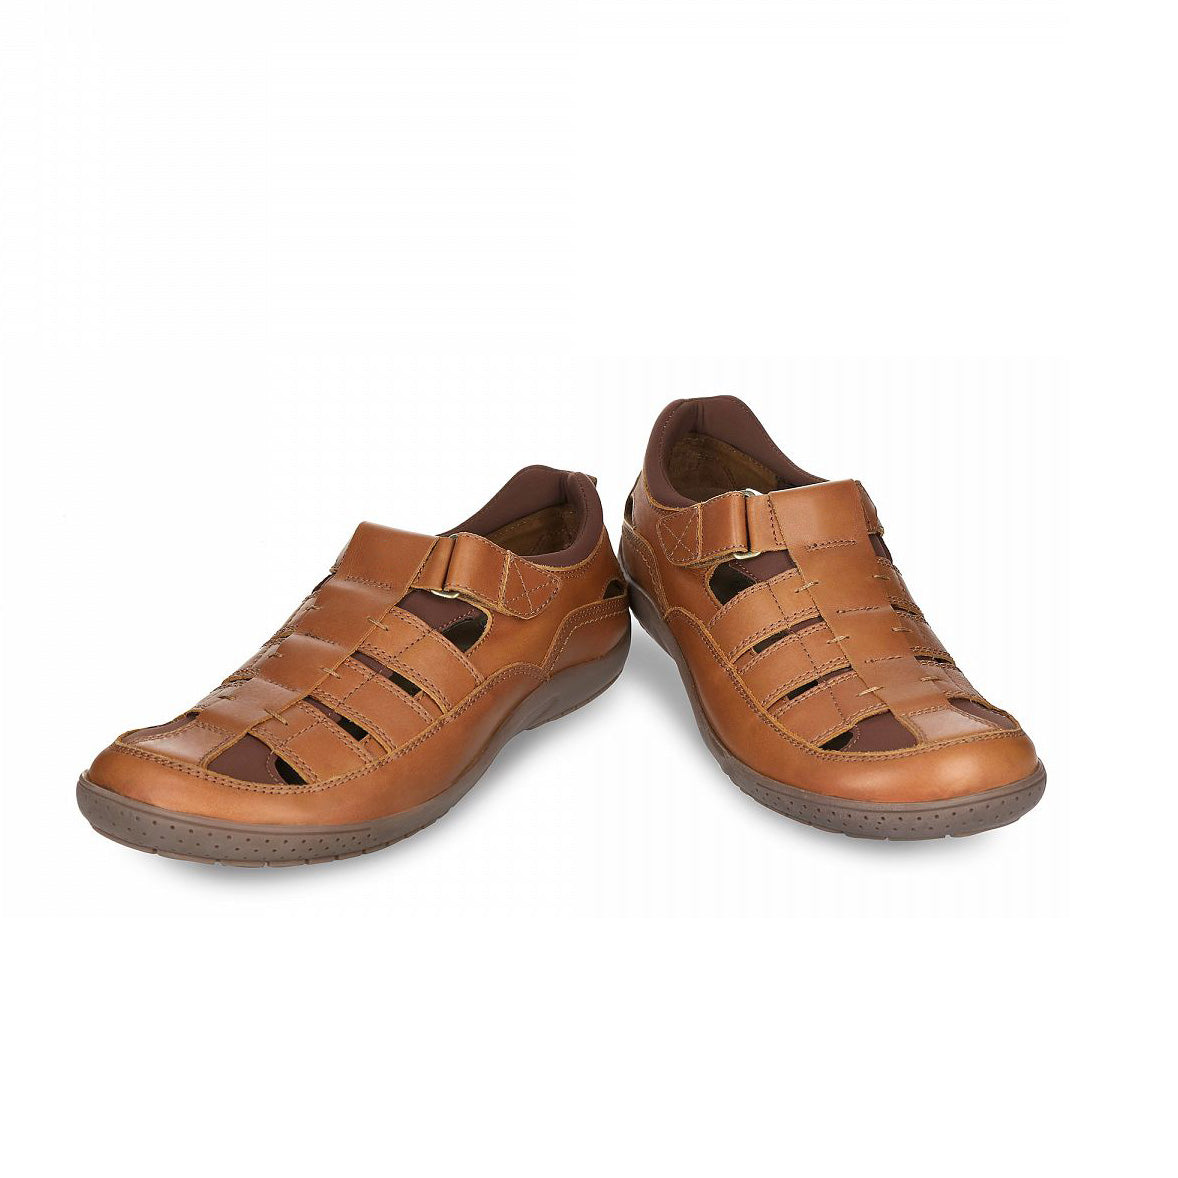 Lycra Lining Leather sandals